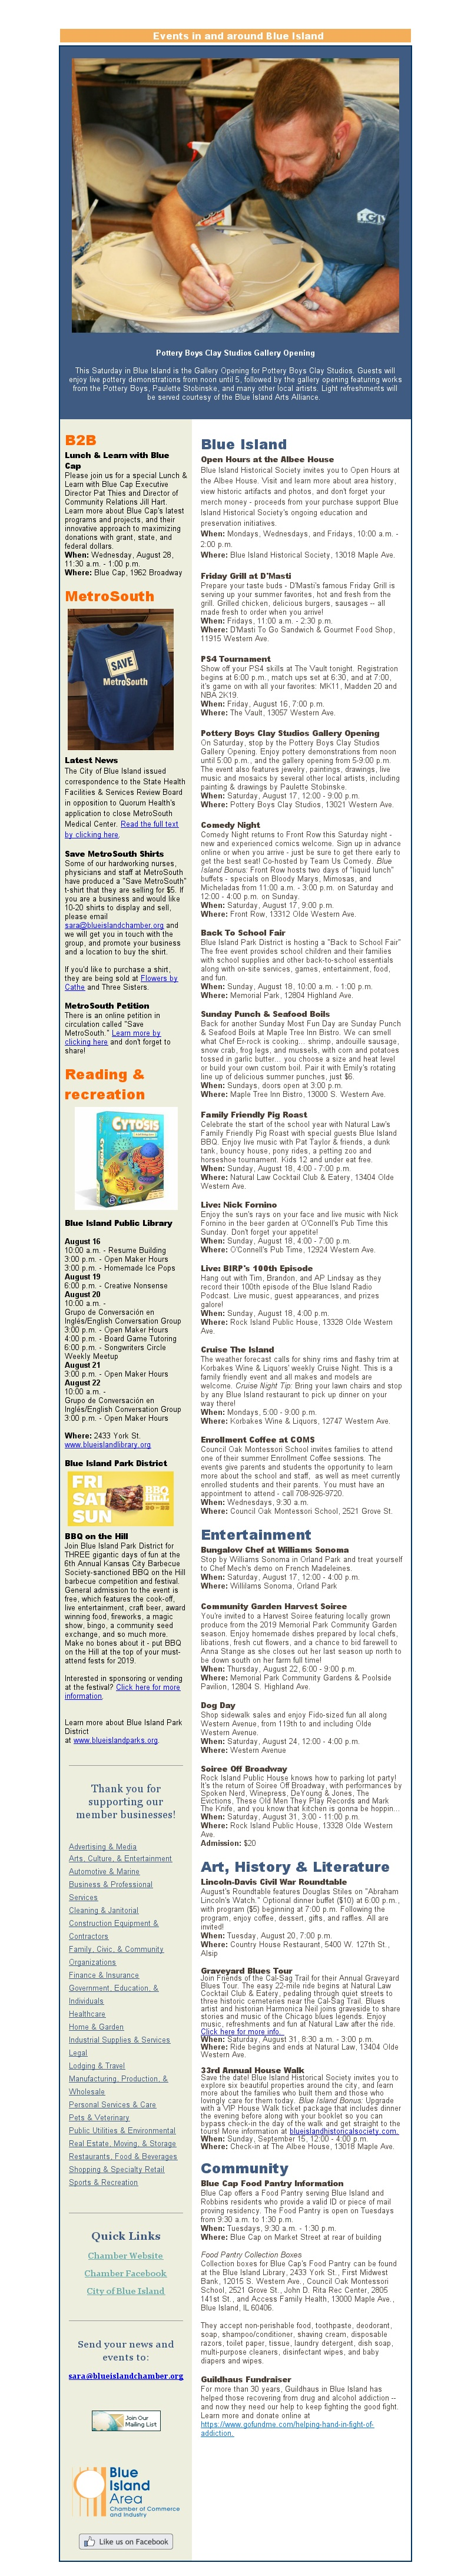 news and events in blue island